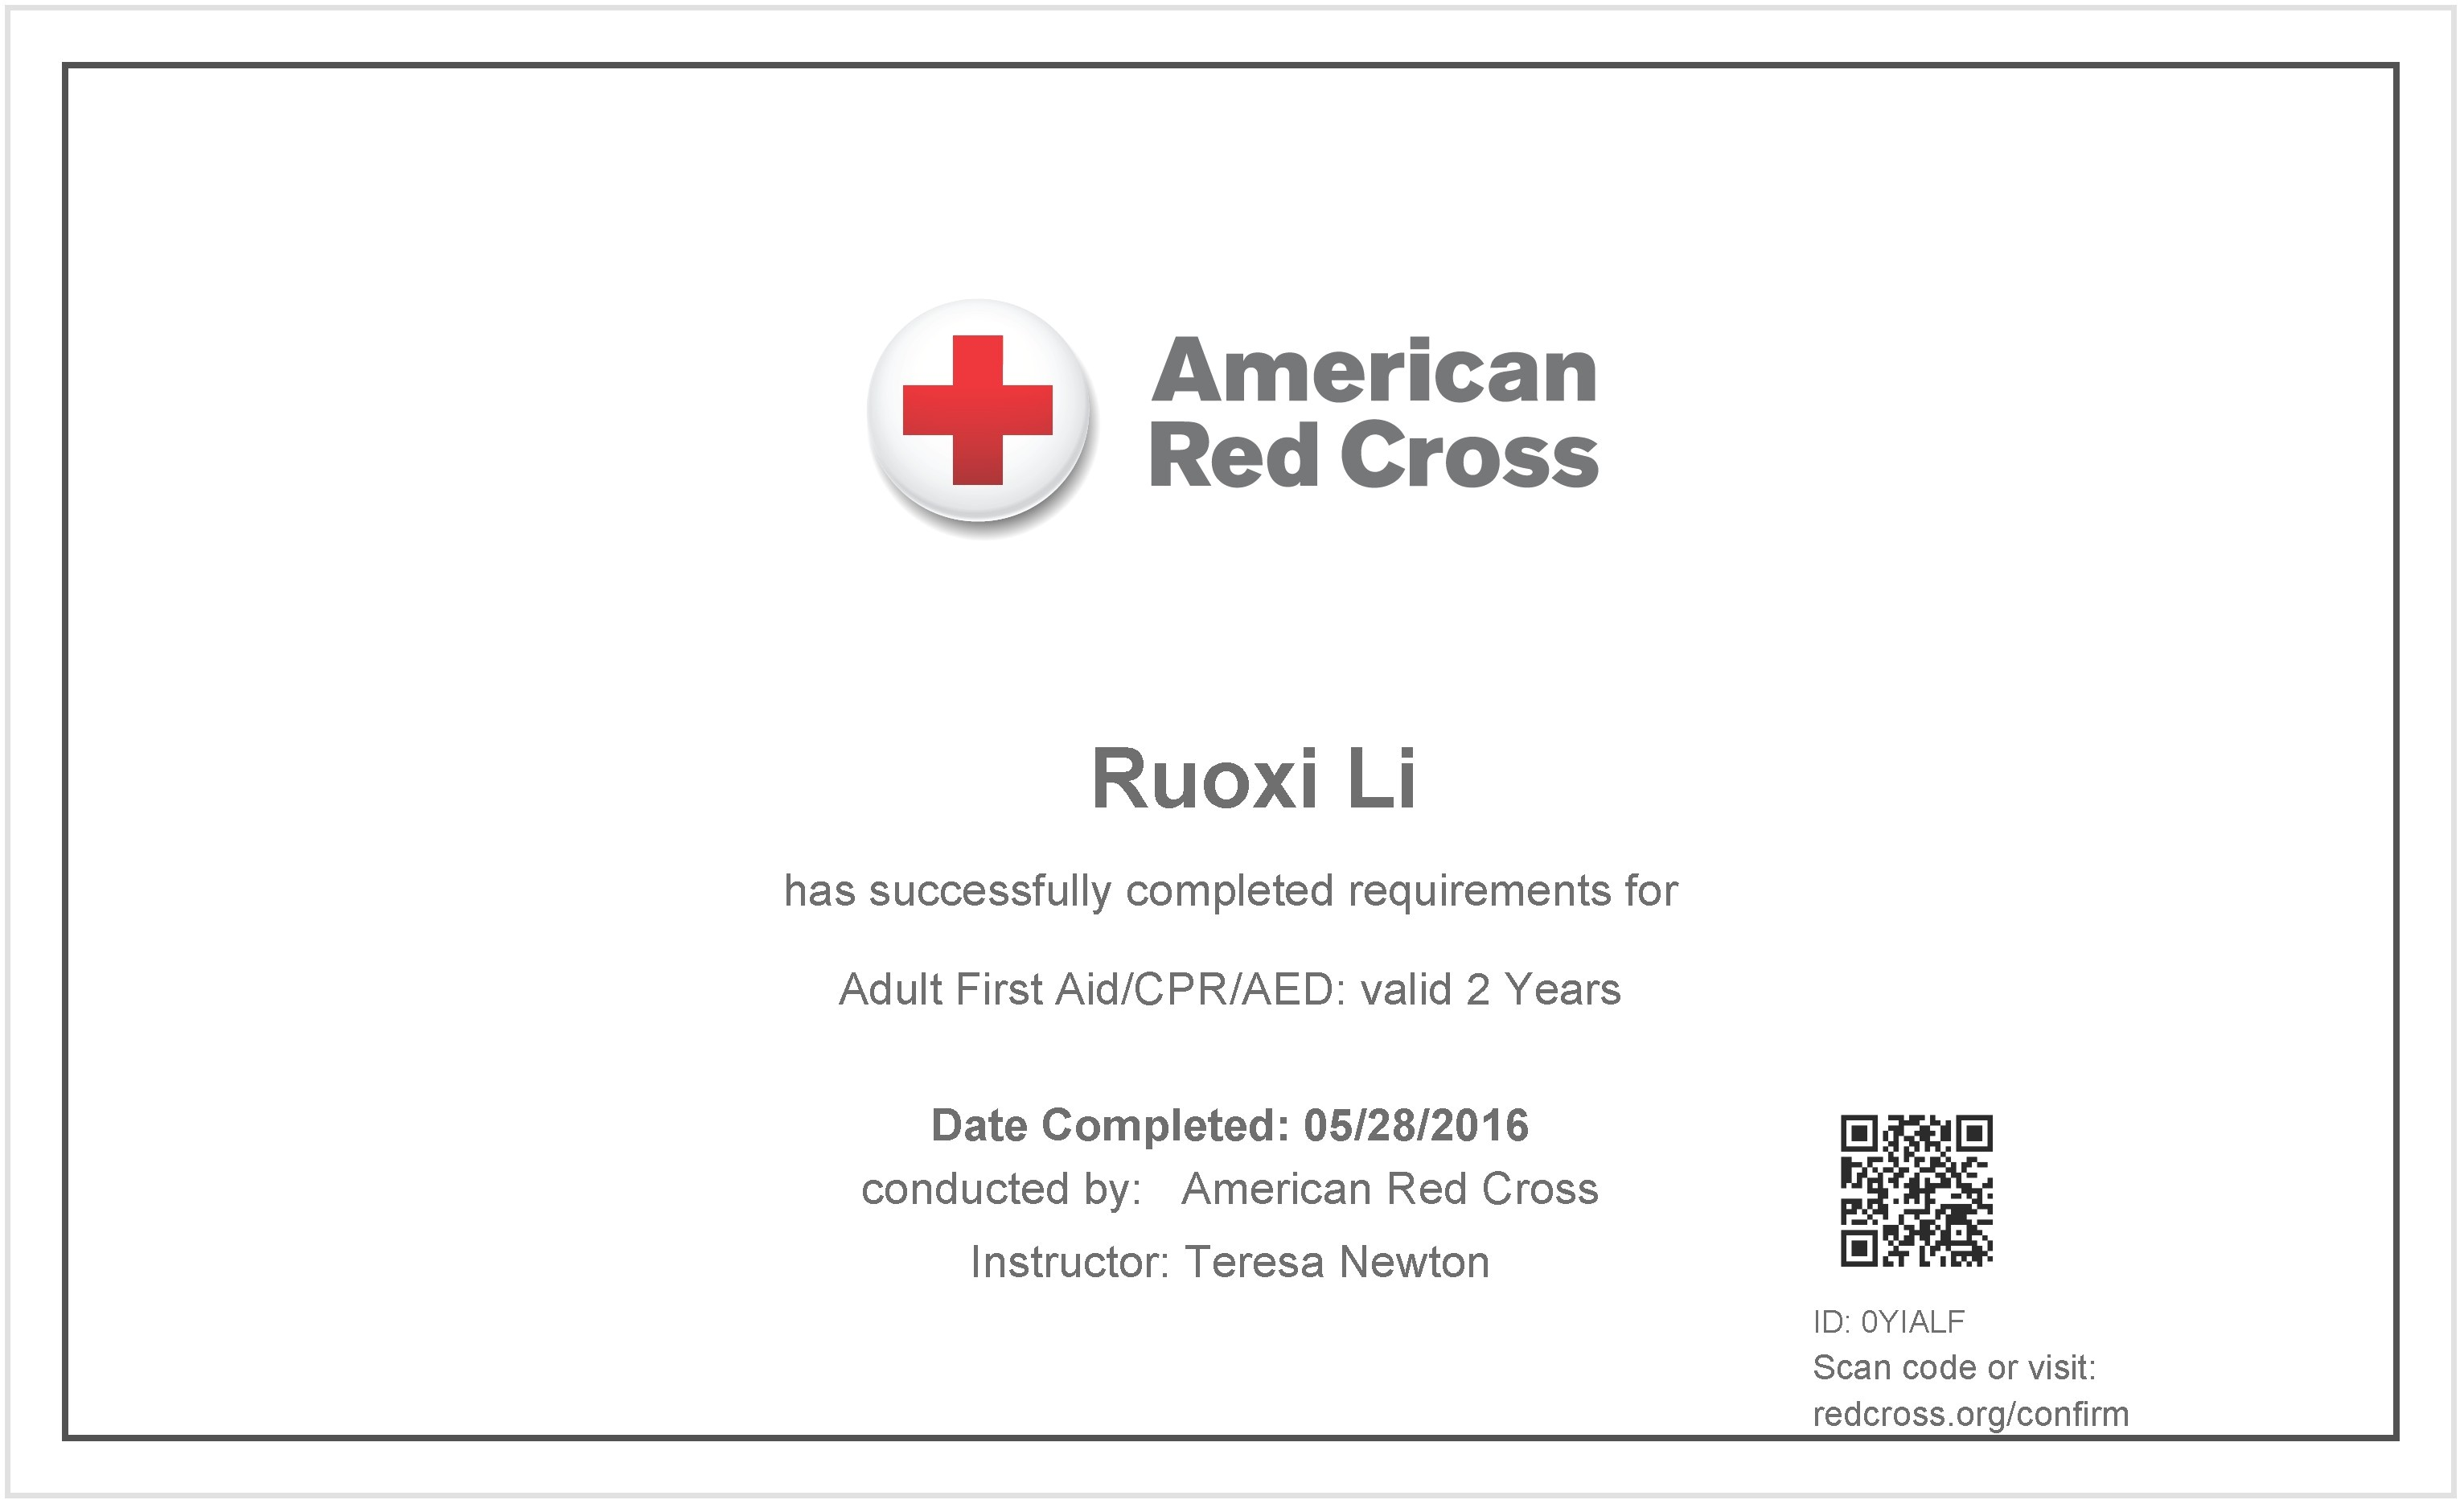 First Aid Certificate Template Free Free Cpr Certification Online Images Certificate Design